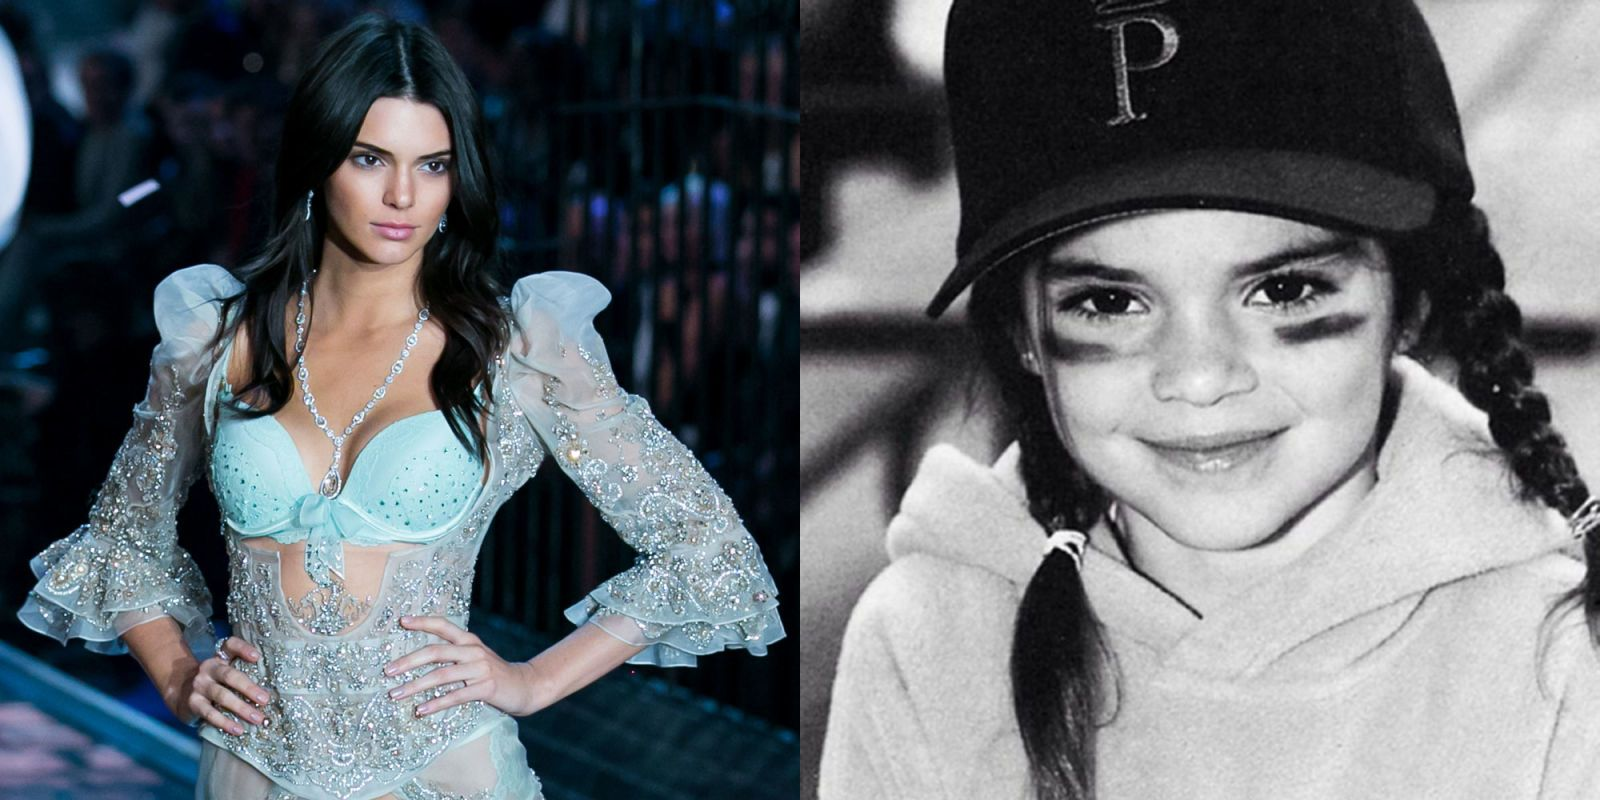 39 as Kids; Before they were Victoria Secret Angels